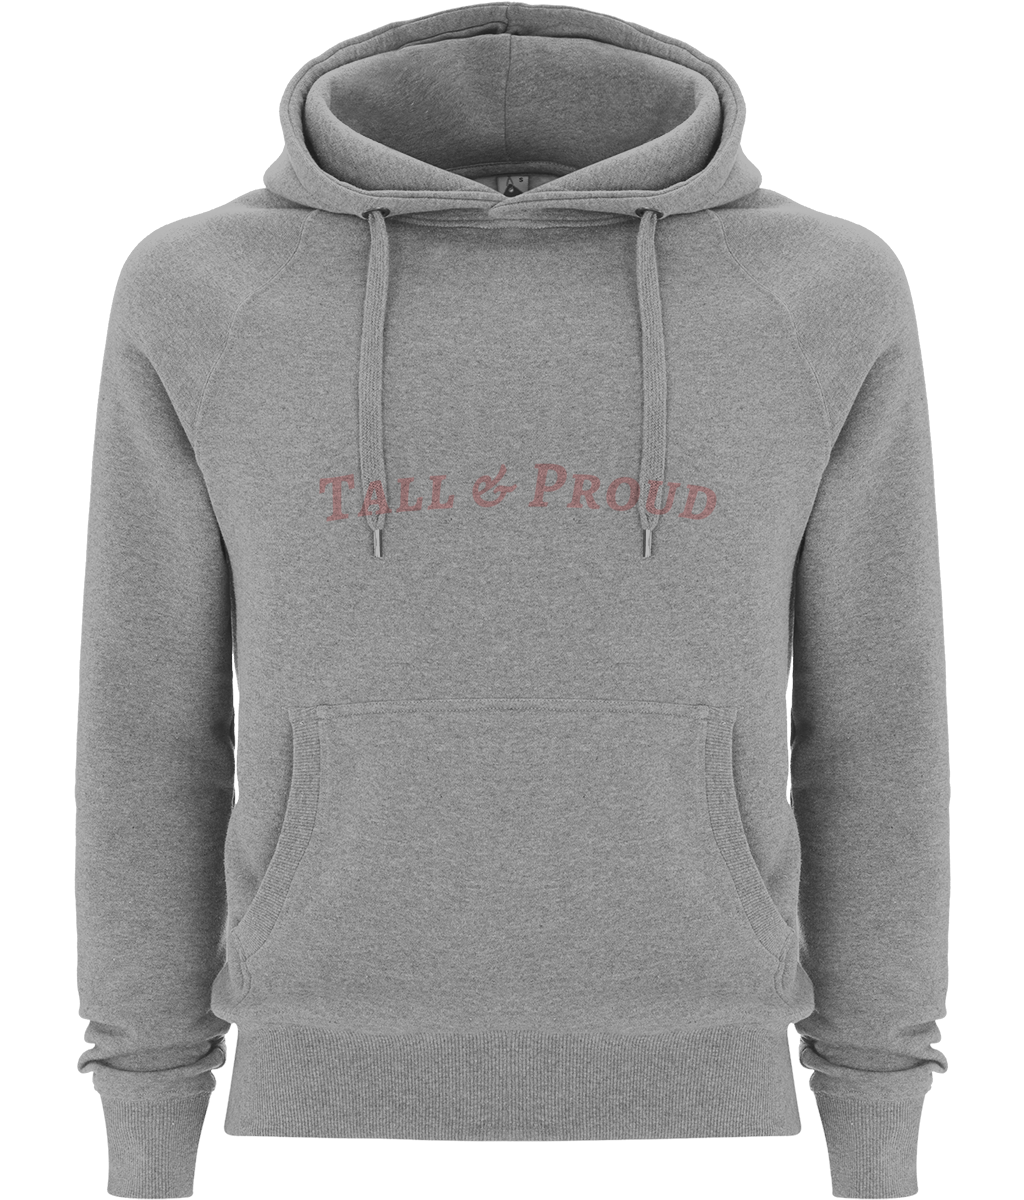 Pullover Hoody Tall & Proud